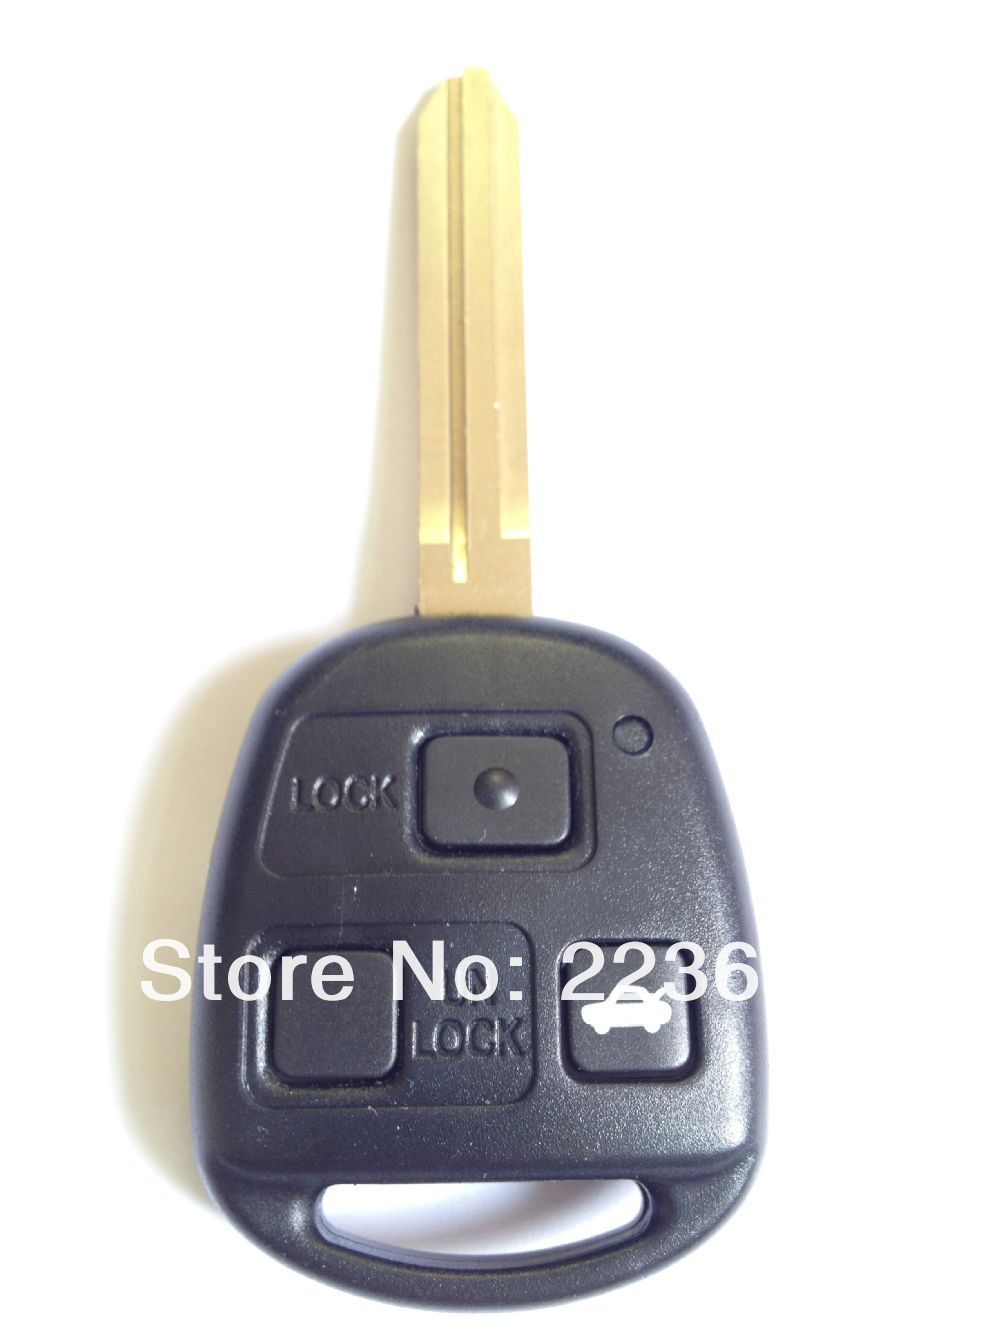 new 3 button toyota remote key(60081) 433mhz 4C chip inside free shipping(China (Mainland))